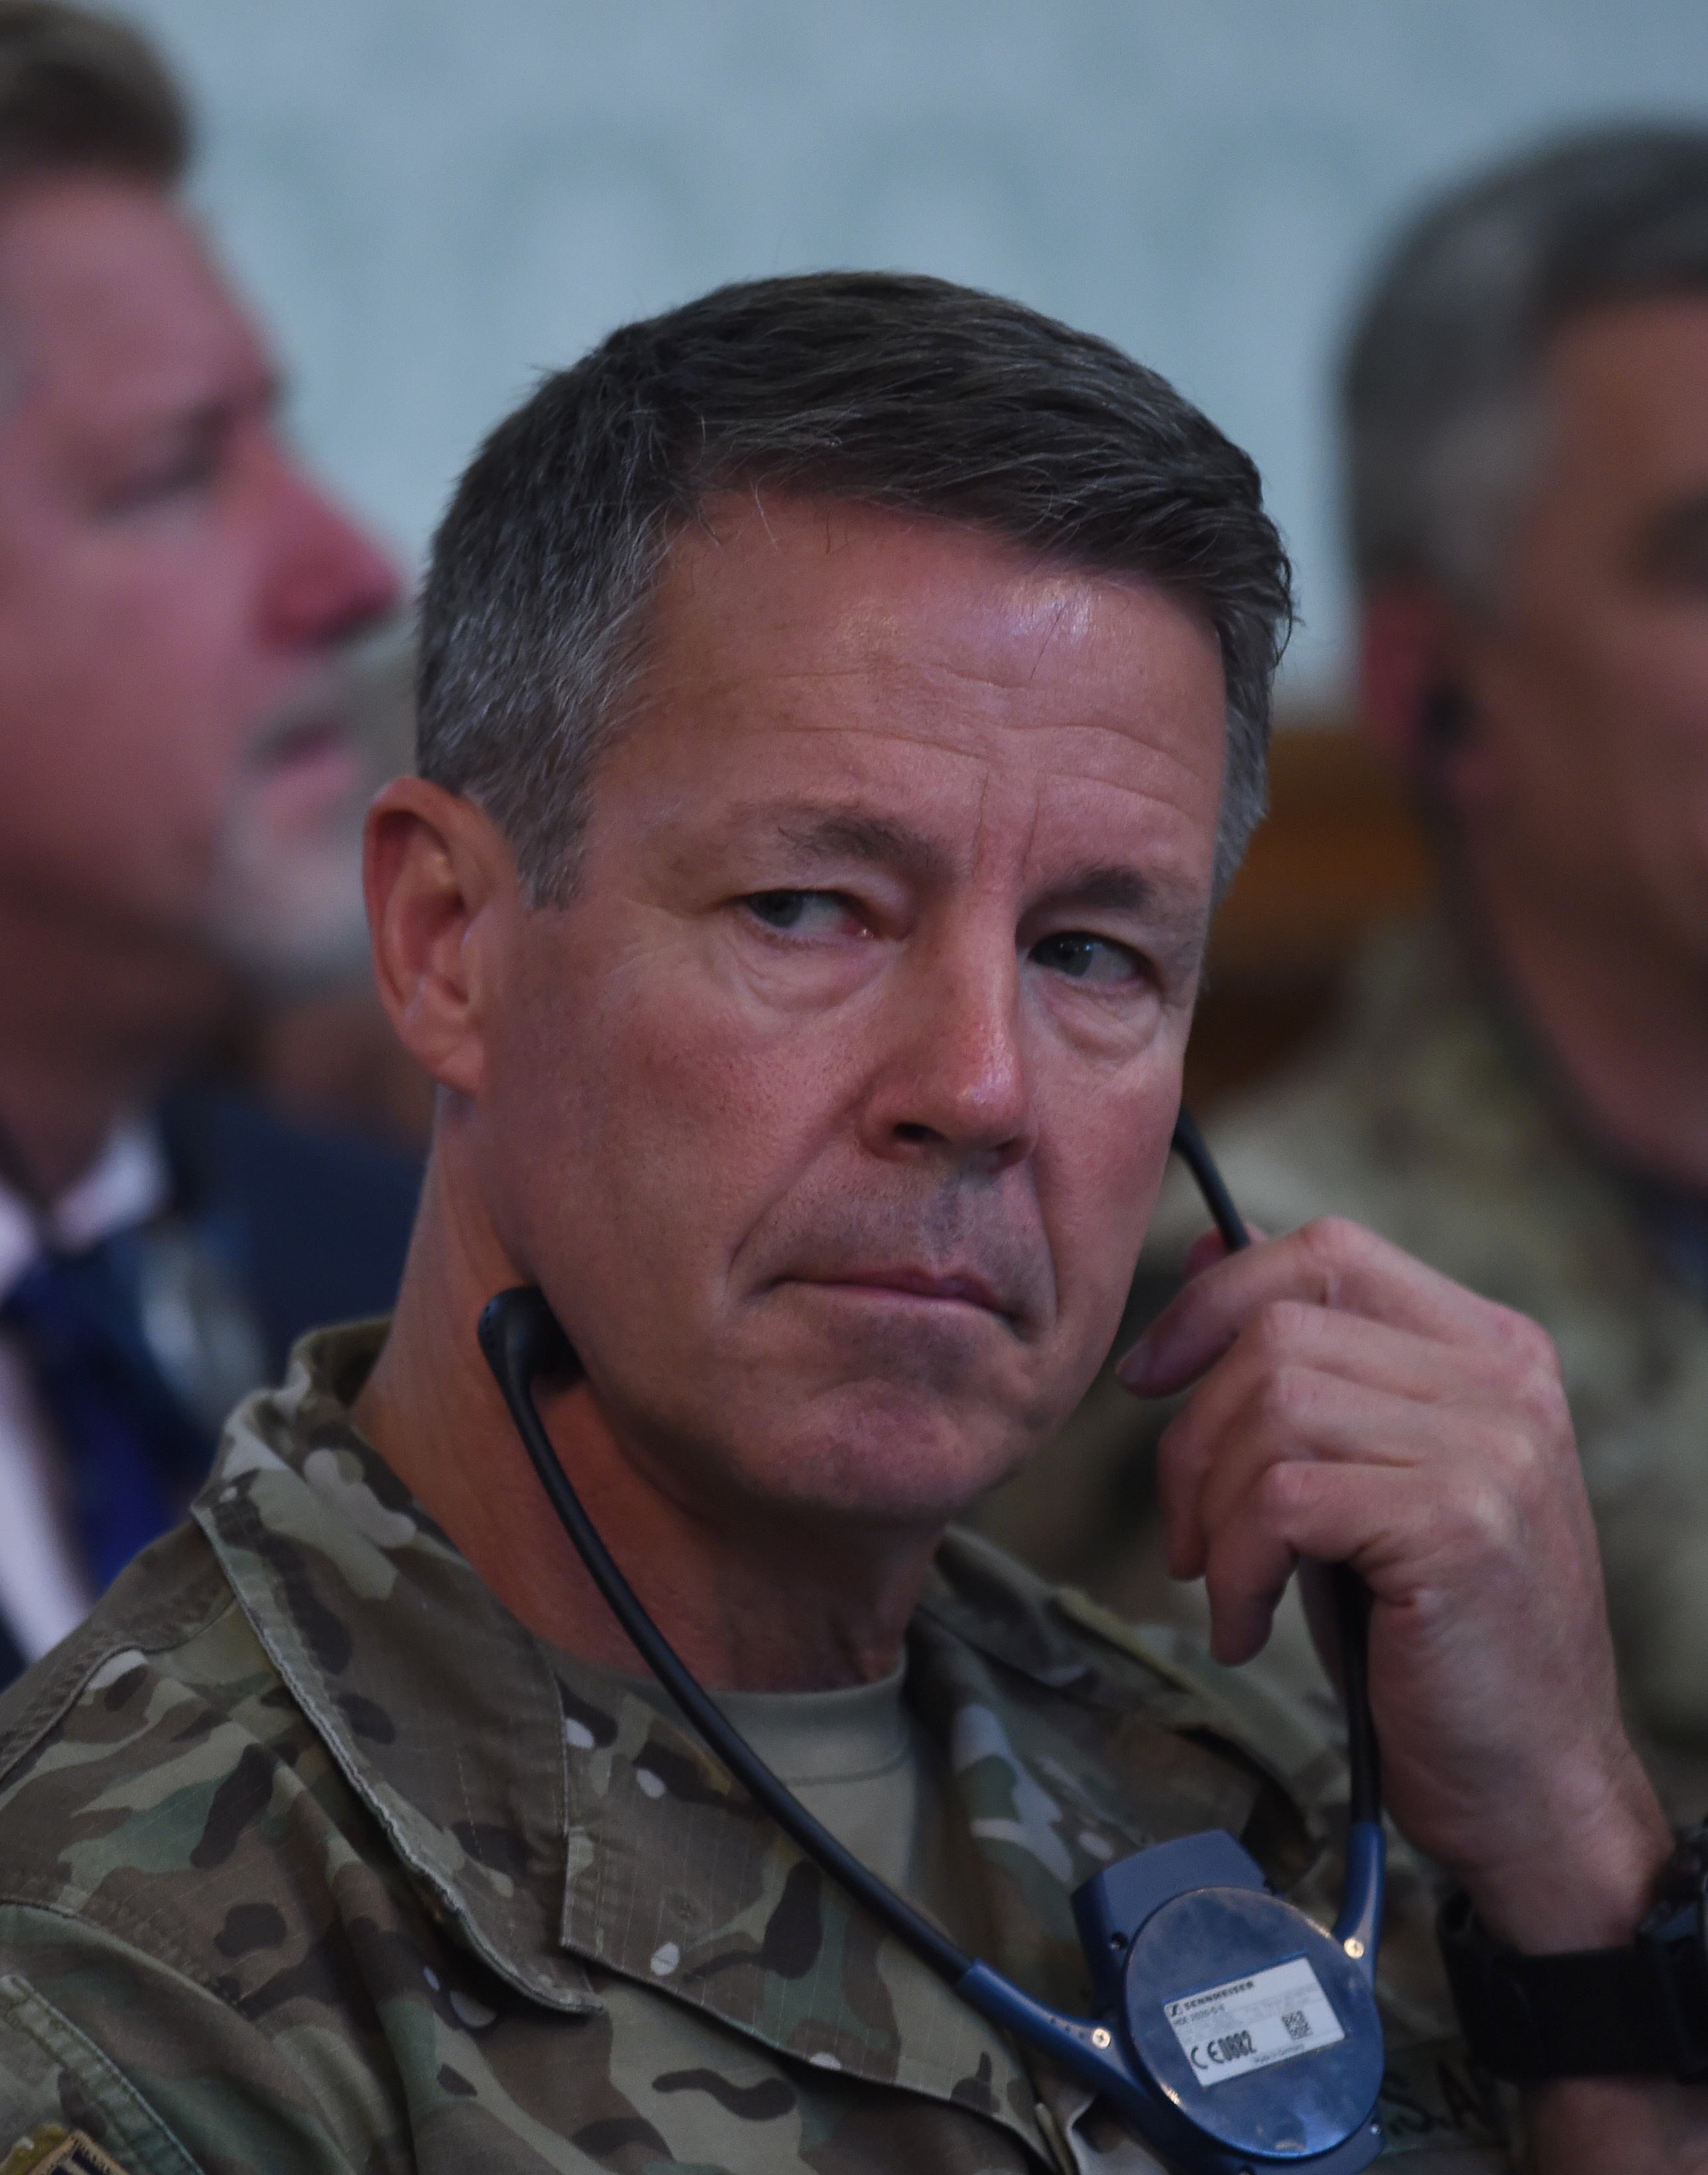 Command of U.S. and NATO forces in Afghanistan General Scott Miller attends the joint press conference of Afghan President Ashraf Ghani and NATO chief Jens Stoltenberg at the Presidential Palace in Kabul, Nov. 6, 2018. NATO chief Jens Stoltenberg sa...